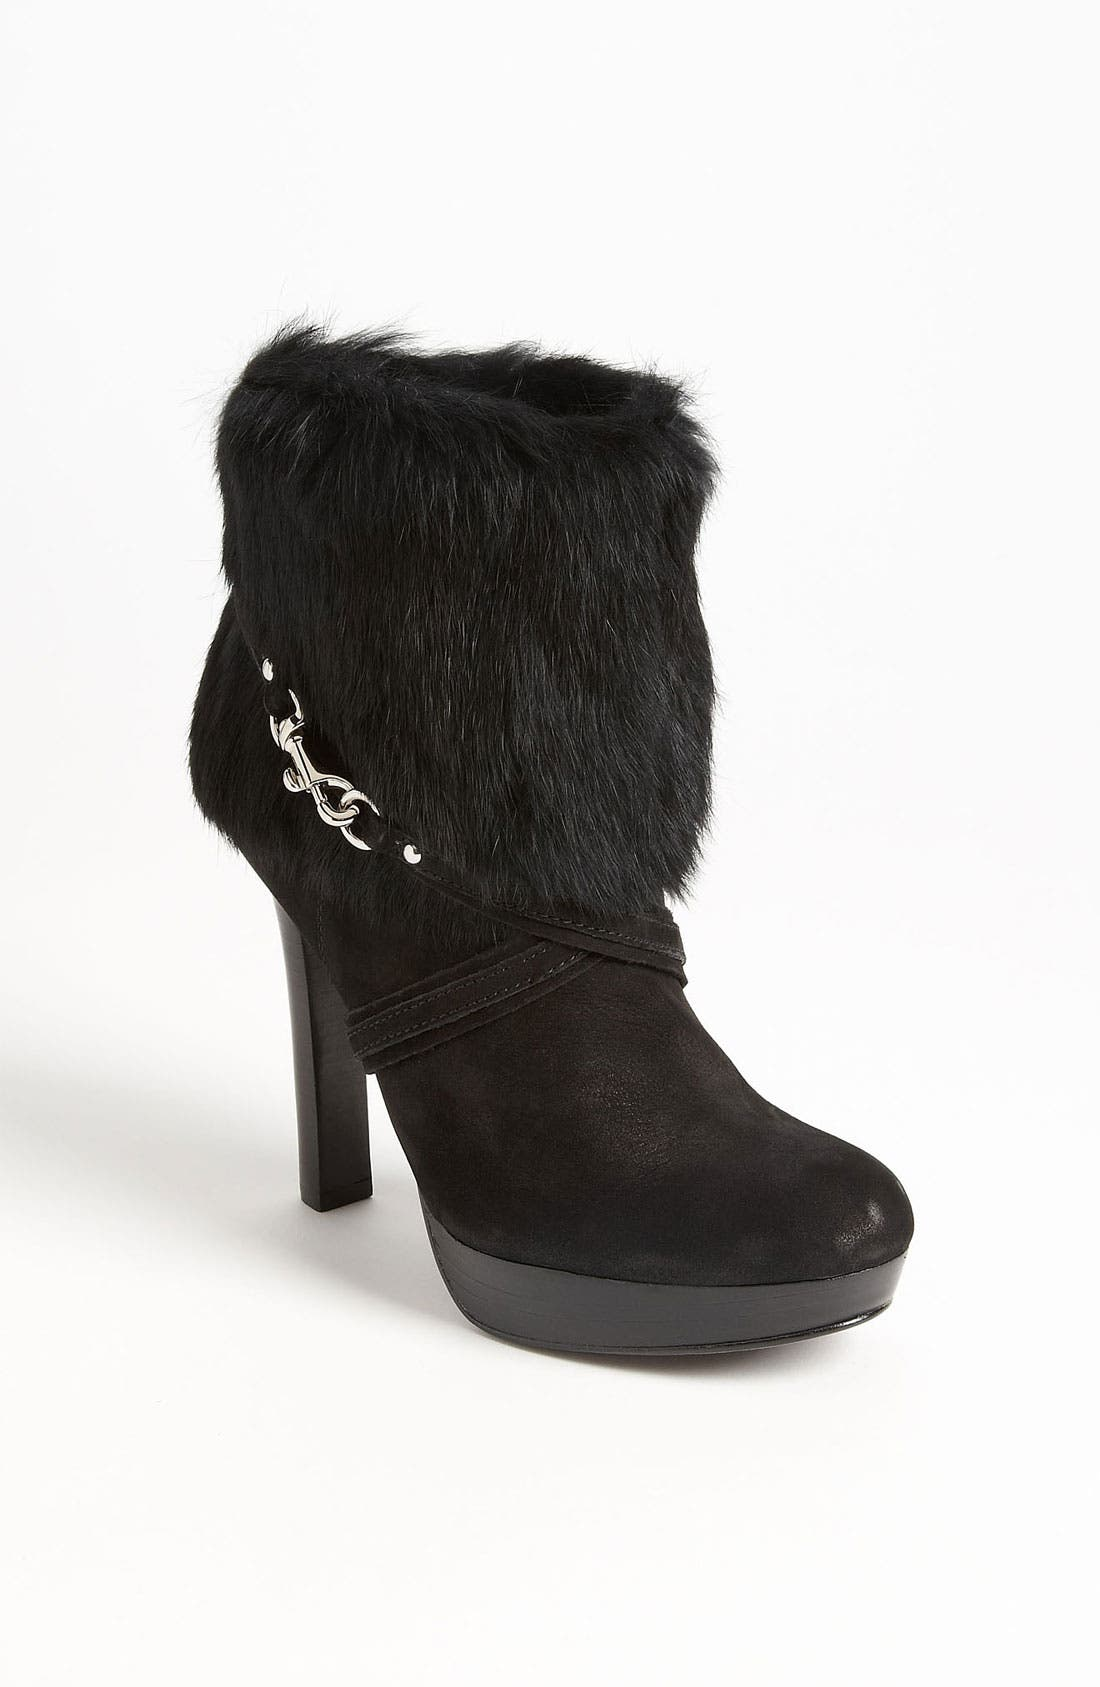 Alternate Image 1 Selected - COACH 'Athena' Bootie